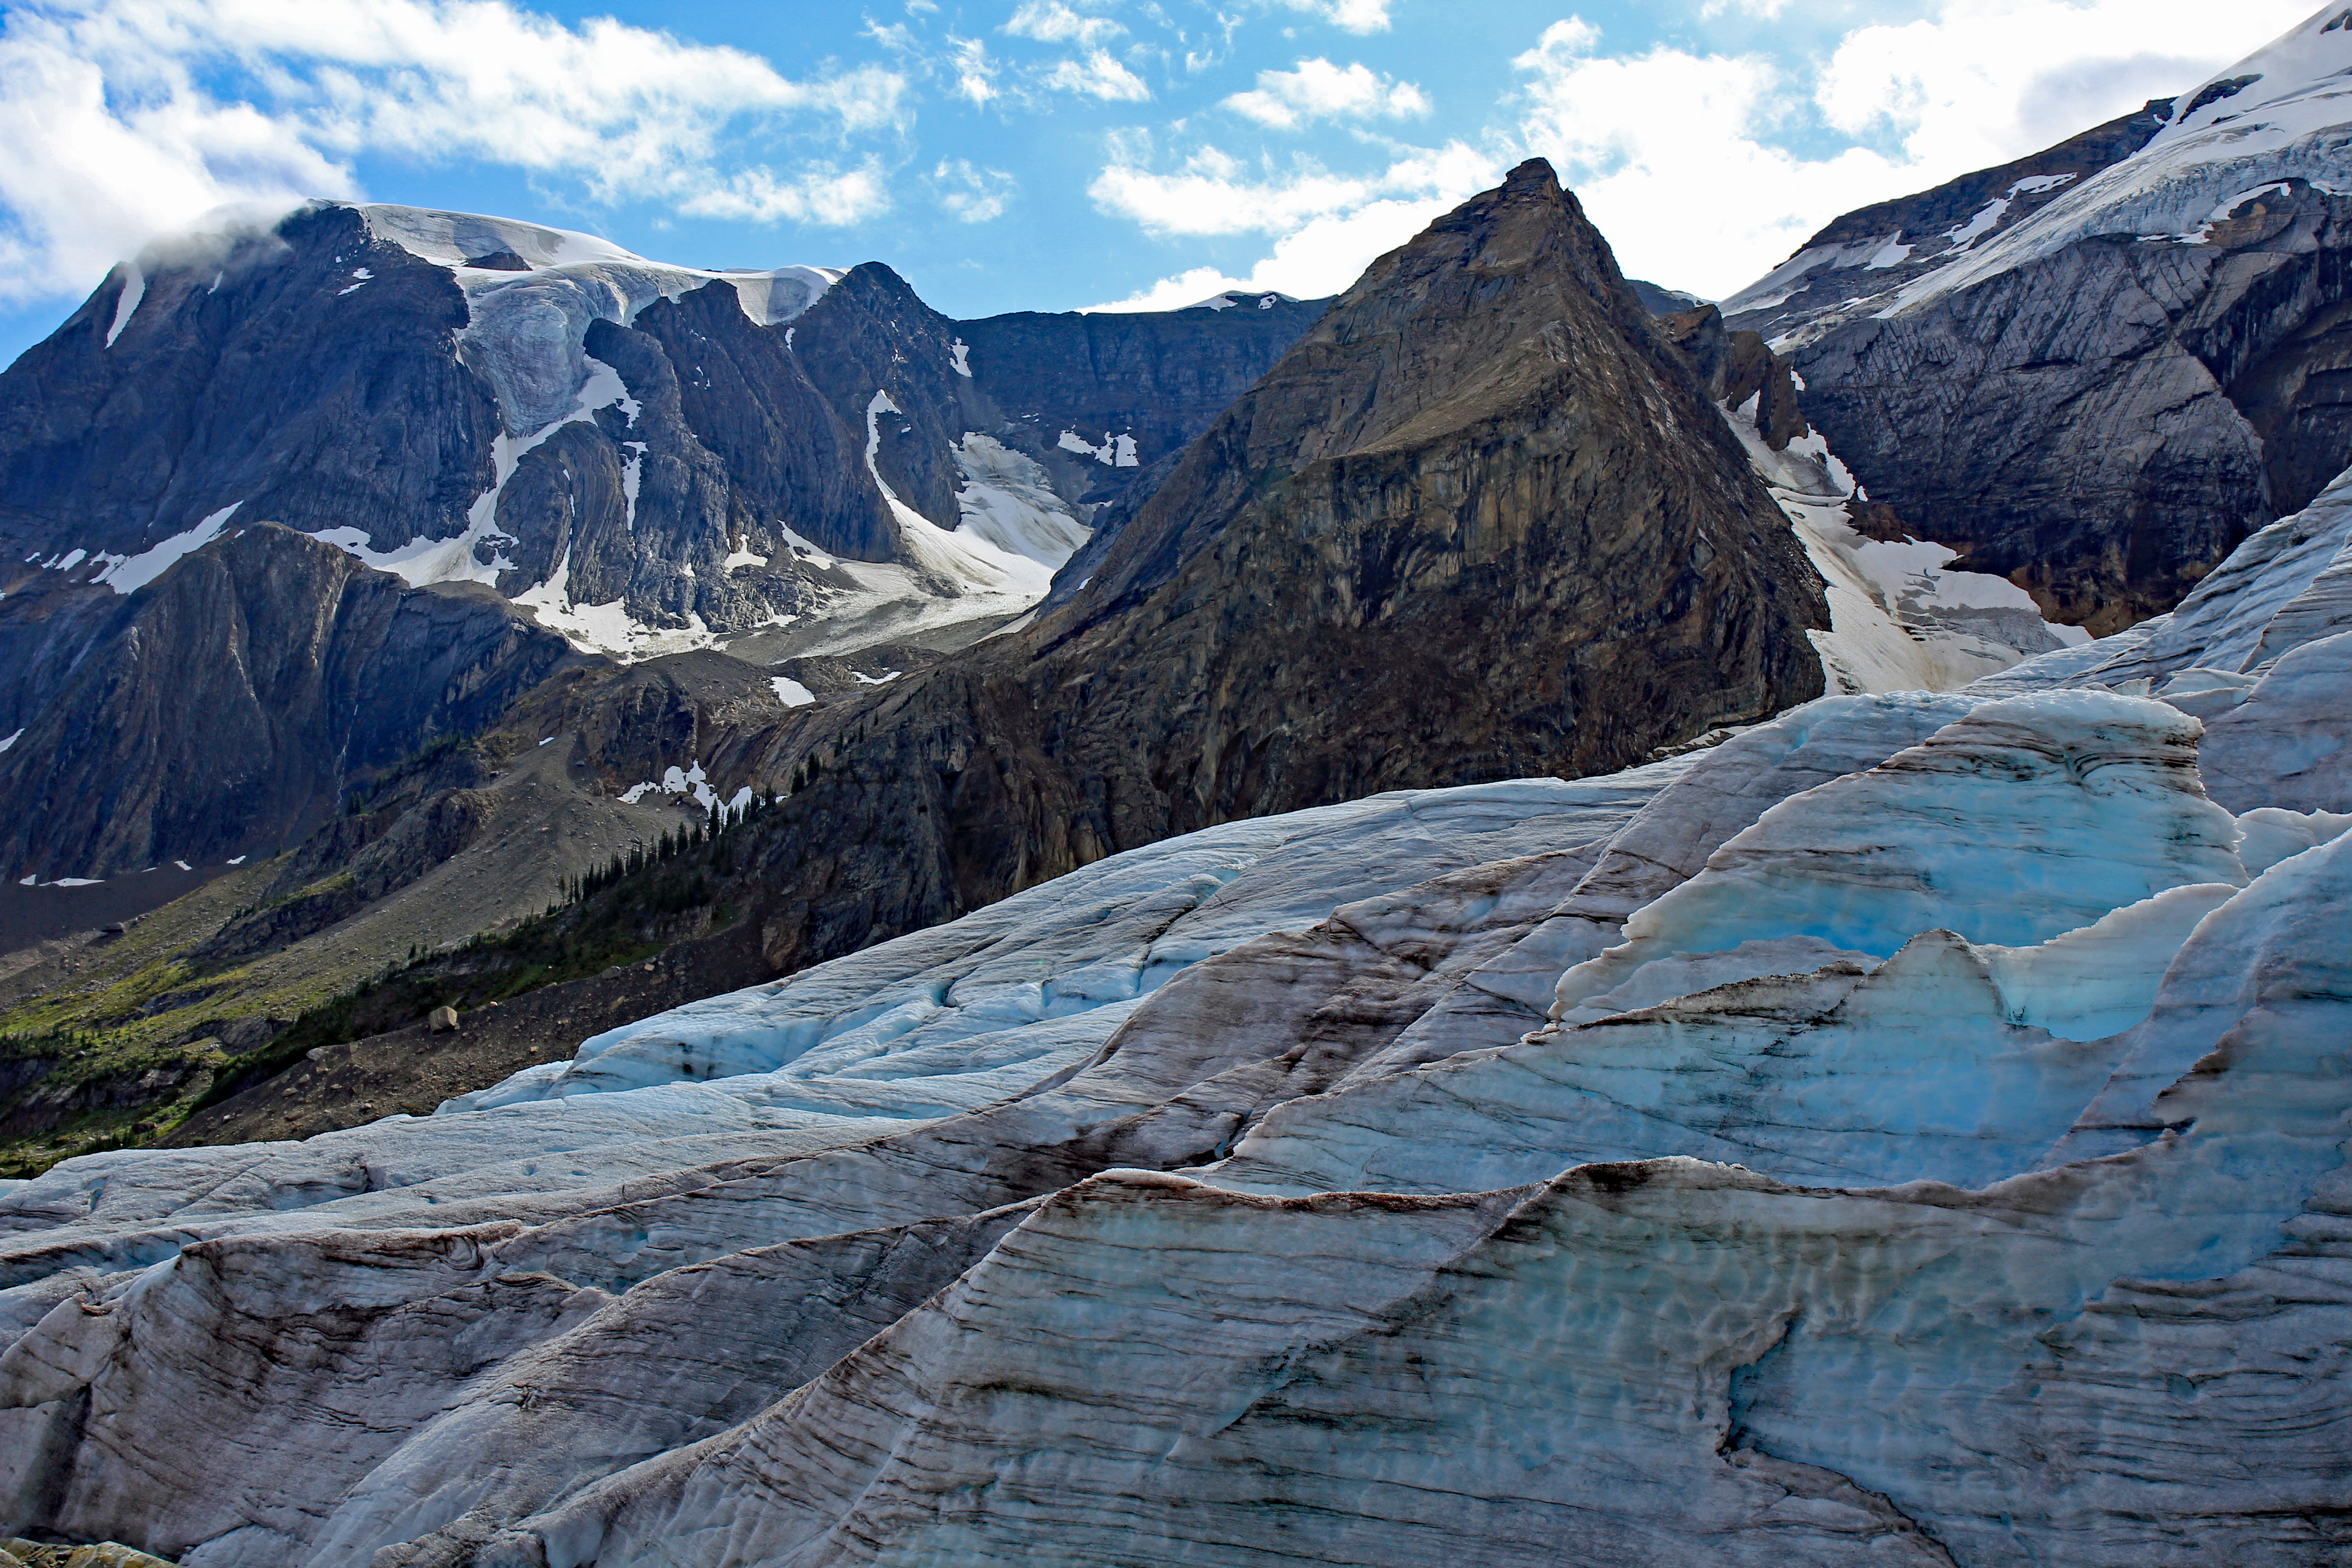 """<p>Mount Mummery Glacier Trail near Golden. BC</p><p class=""""lightbox-share""""><span>Share: </span><a class=""""lightbox-fb"""" href=""""javascript:void(0);"""">Facebook</a><a class=""""lightbox-twit"""" href=""""https://twitter.com/home?status=I%20voted%20for%20Mummery%20Glacier%20in%20the%20Cornice%20Calendar%20Contest.%20Choose%20your%20favourite%206%20photos:%20http://ow.ly/yCSmZ"""" target=""""_blank"""">Twitter</a></p><input type=hidden class=voteid value=1914 />"""